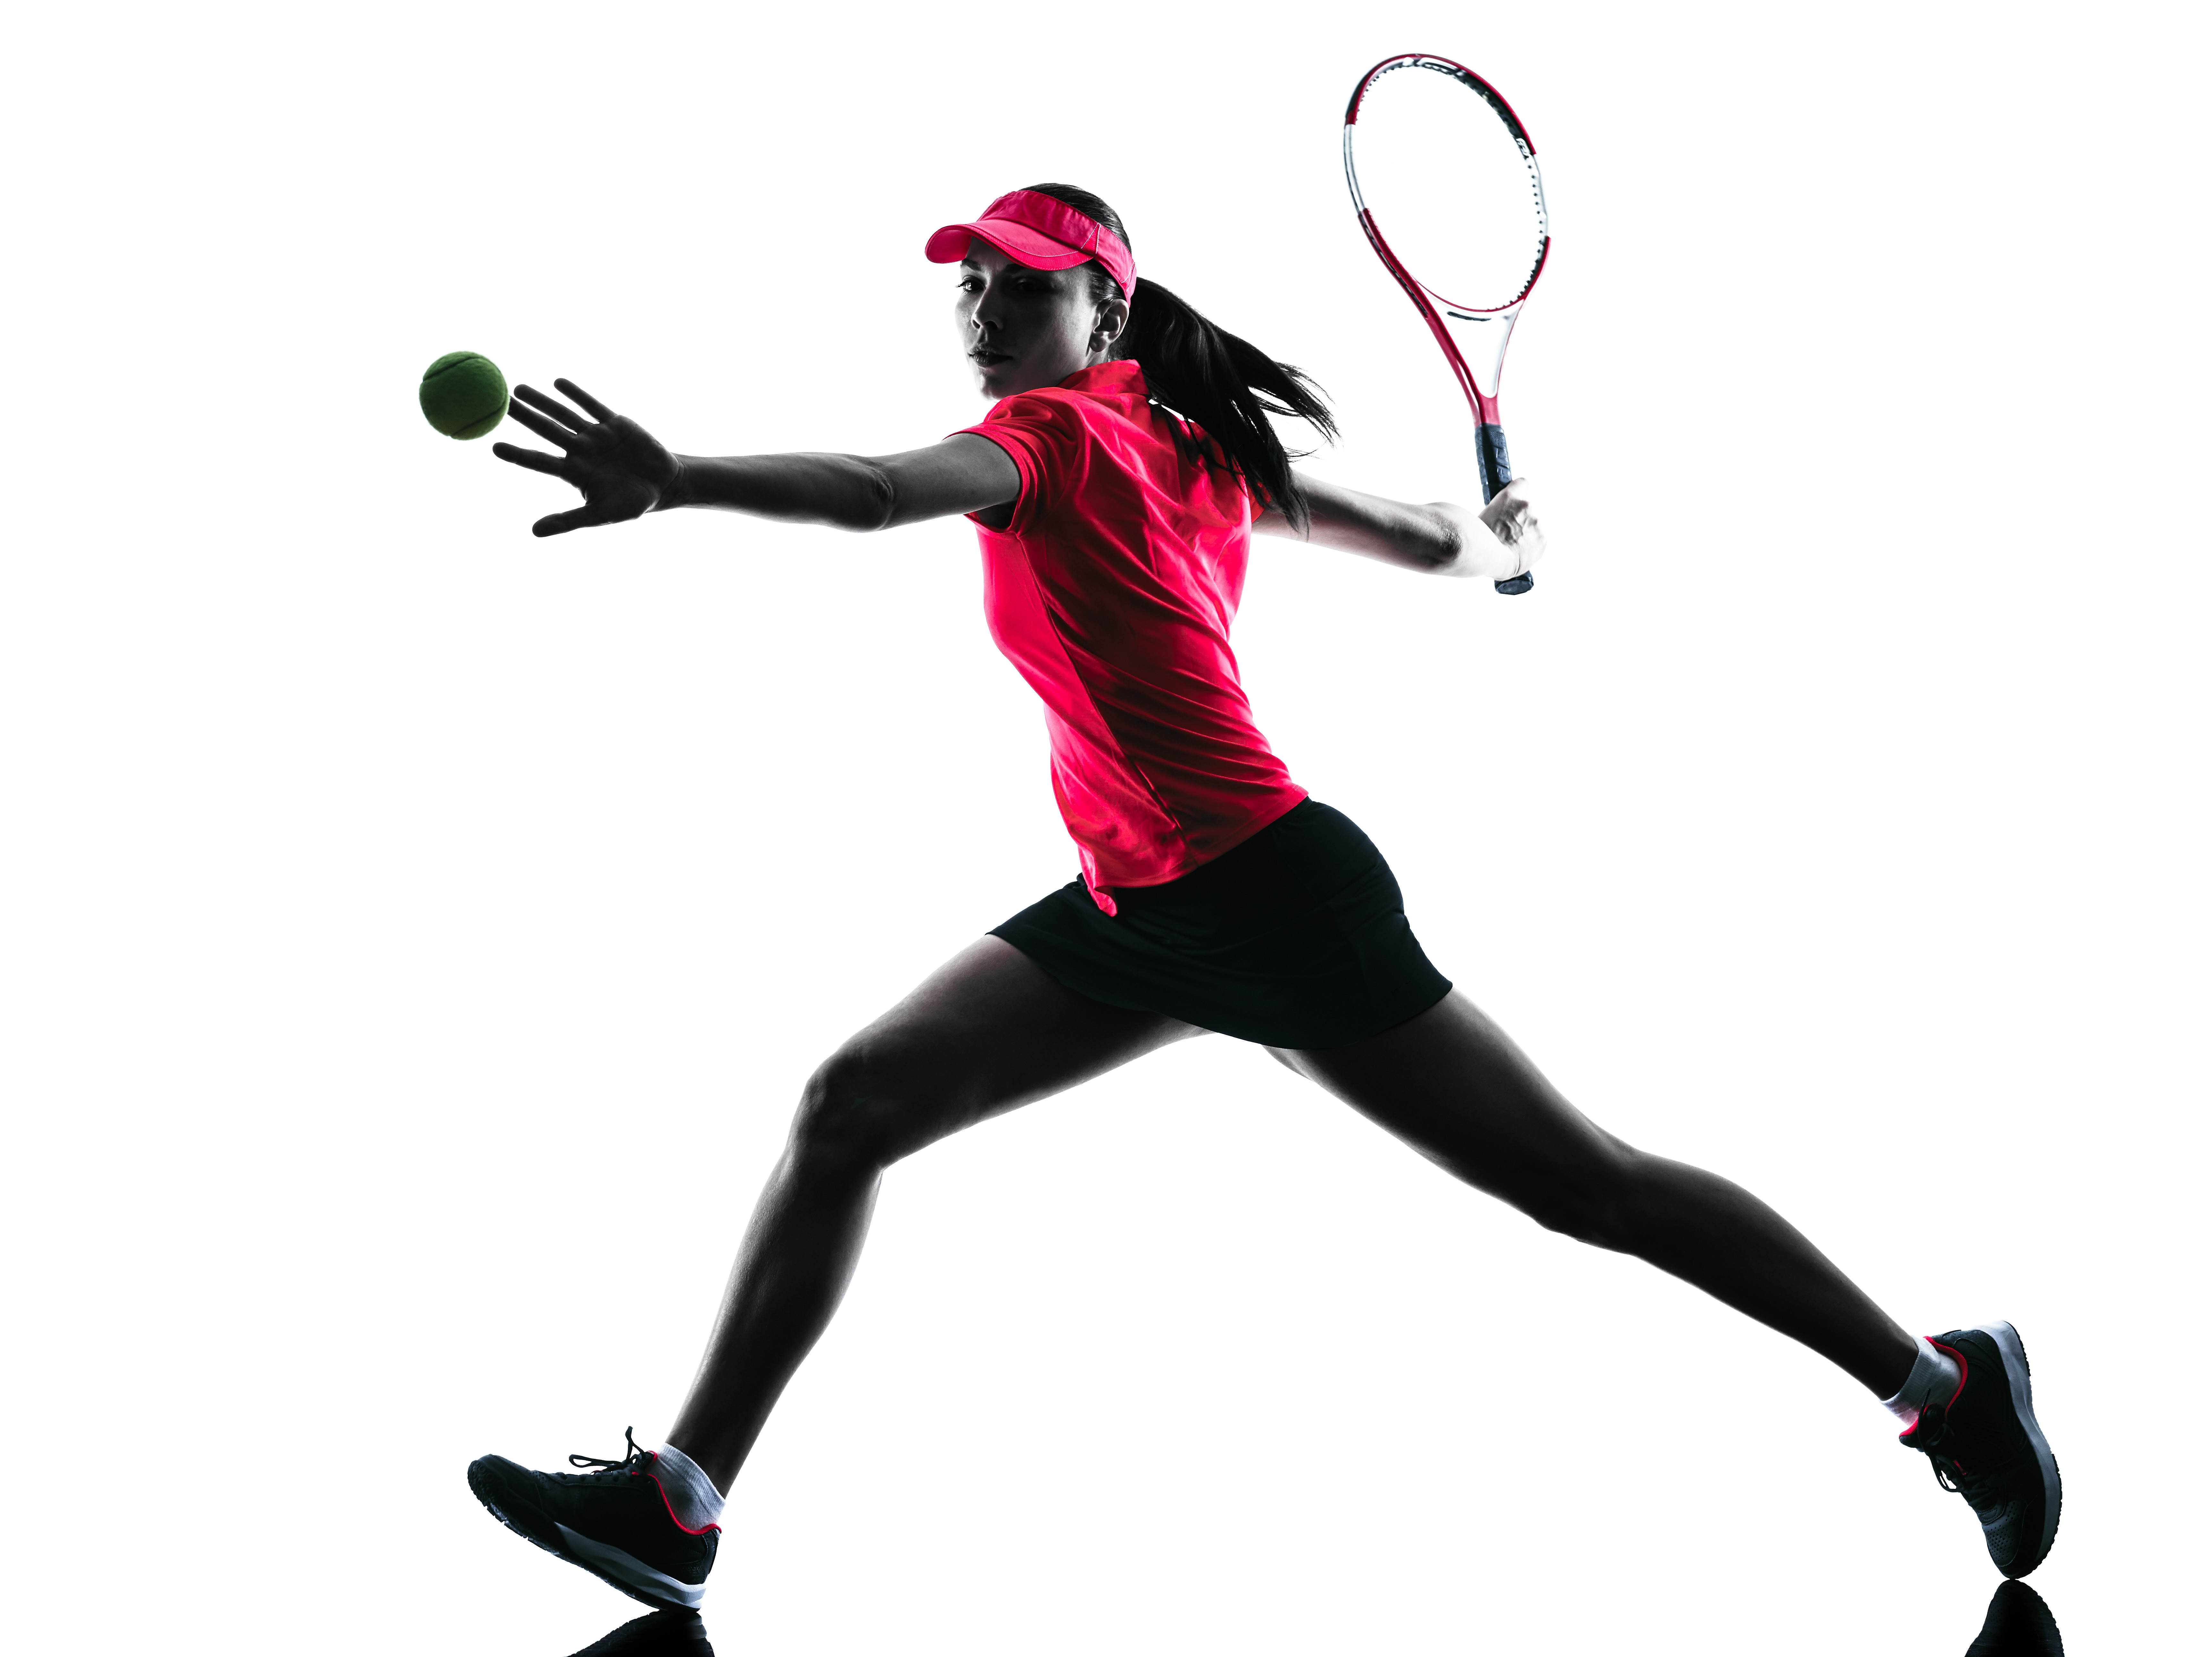 6894x5165 Woman Tennis Player Sadness Silhouette The Tennis And Fitness Centre